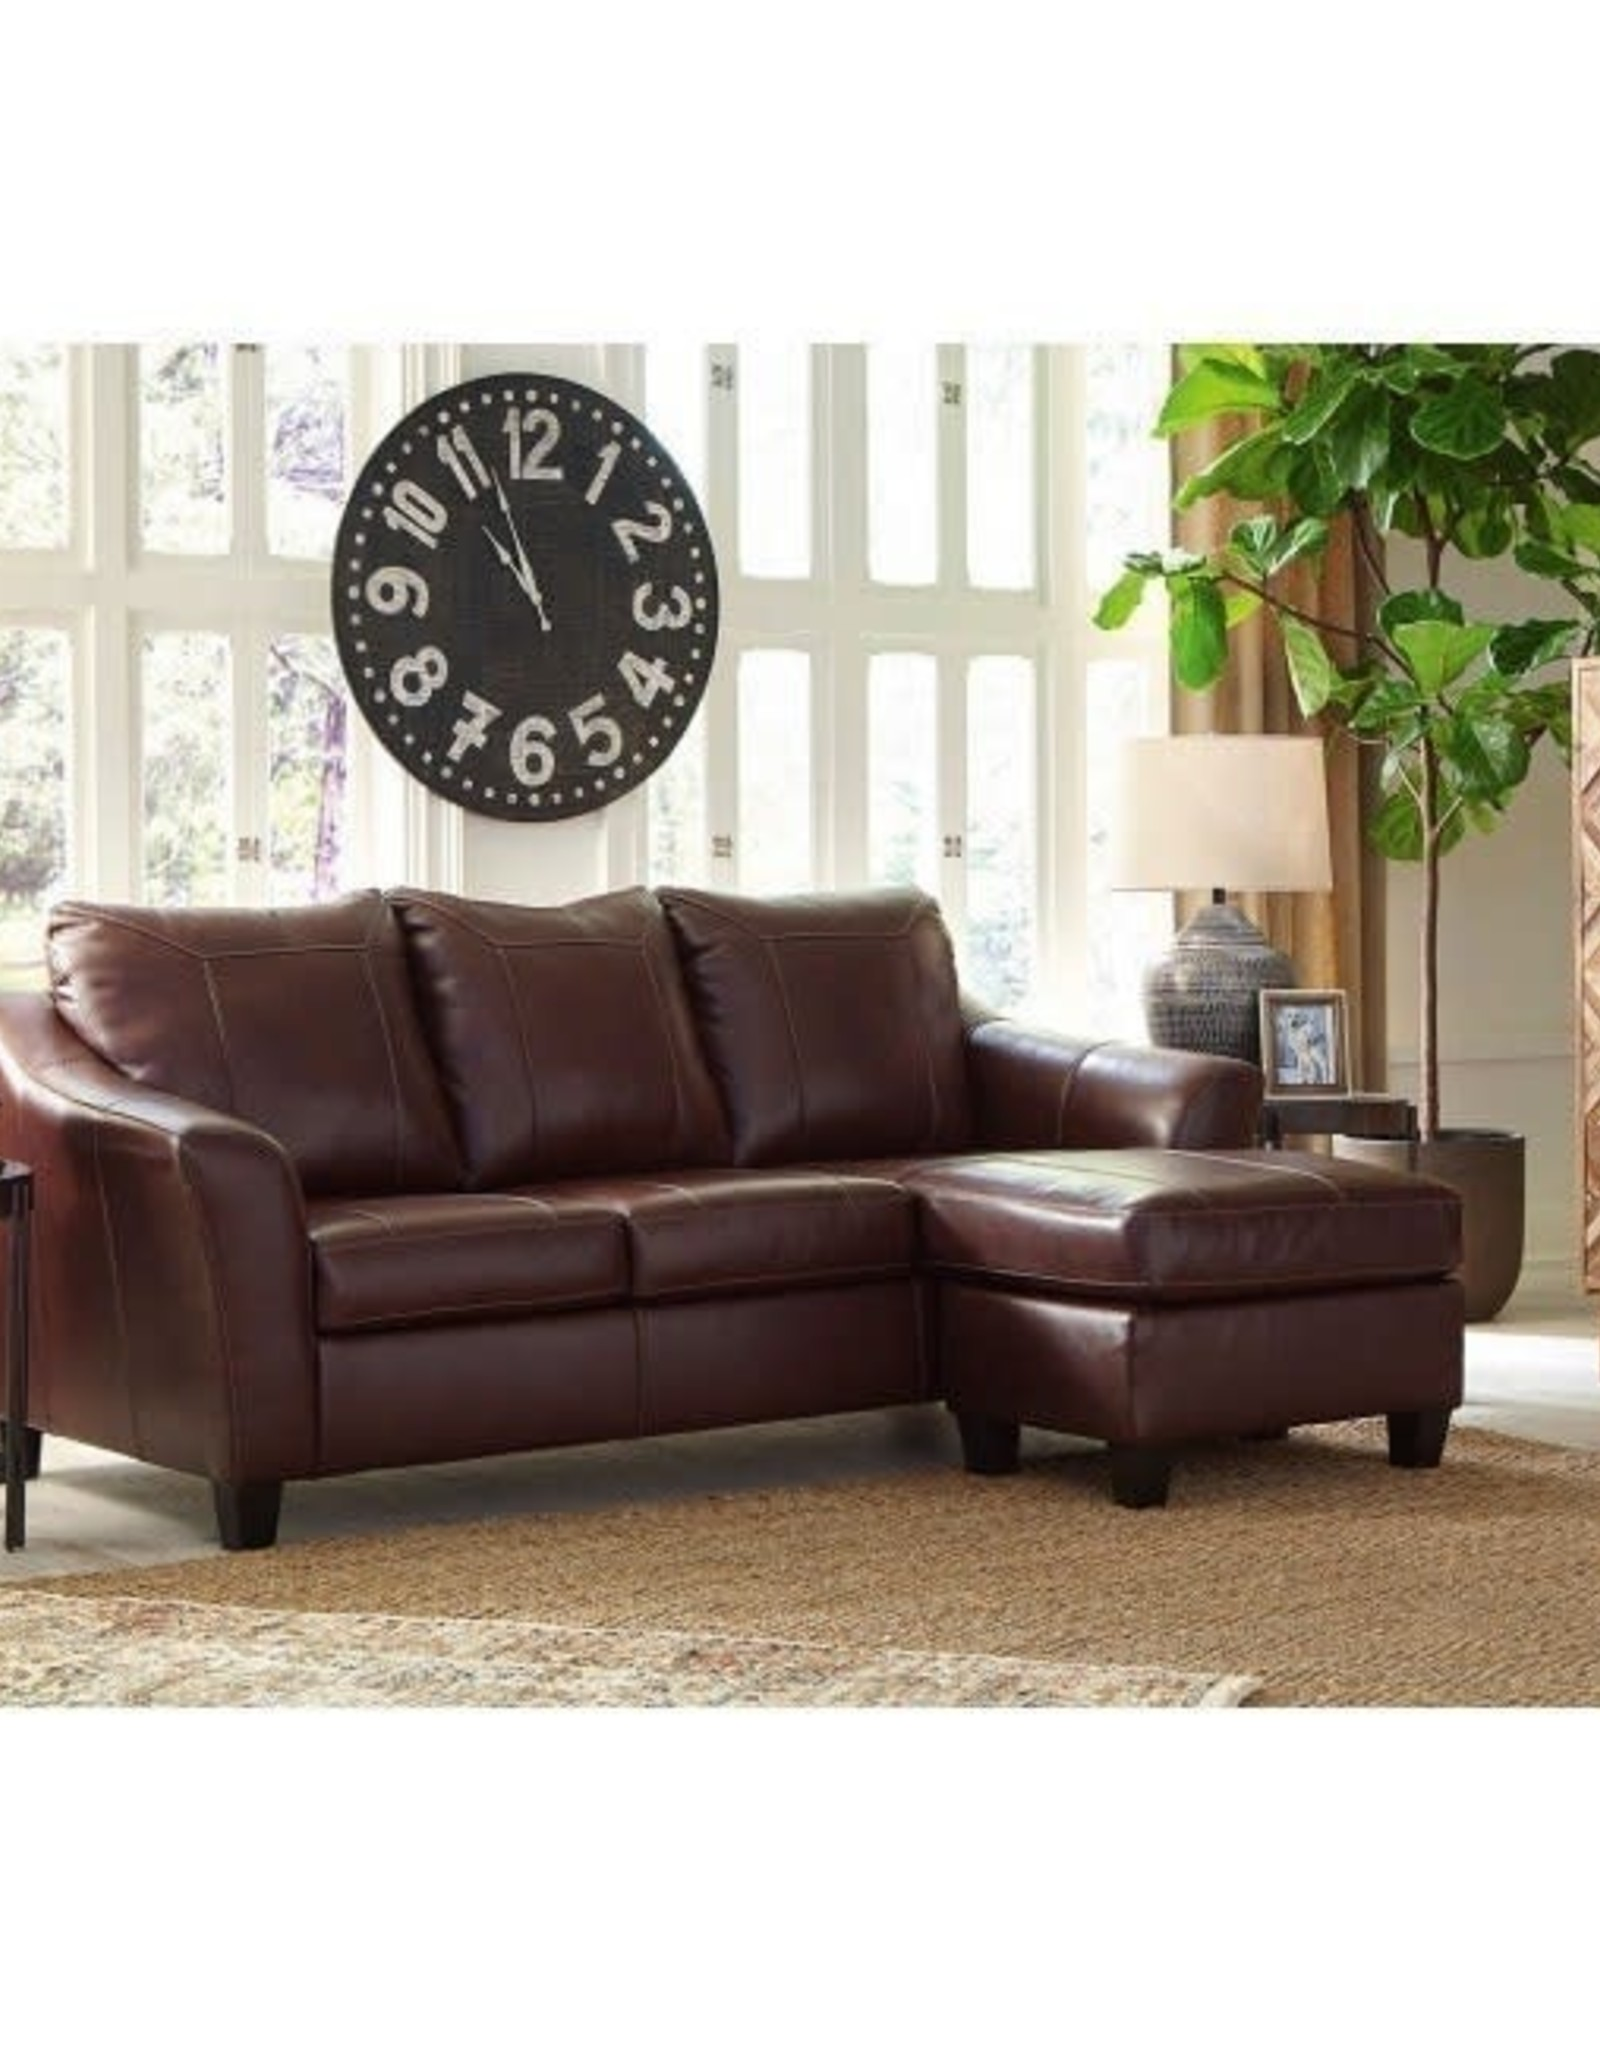 CLOSEOUT: Fortney Sofa Chaise